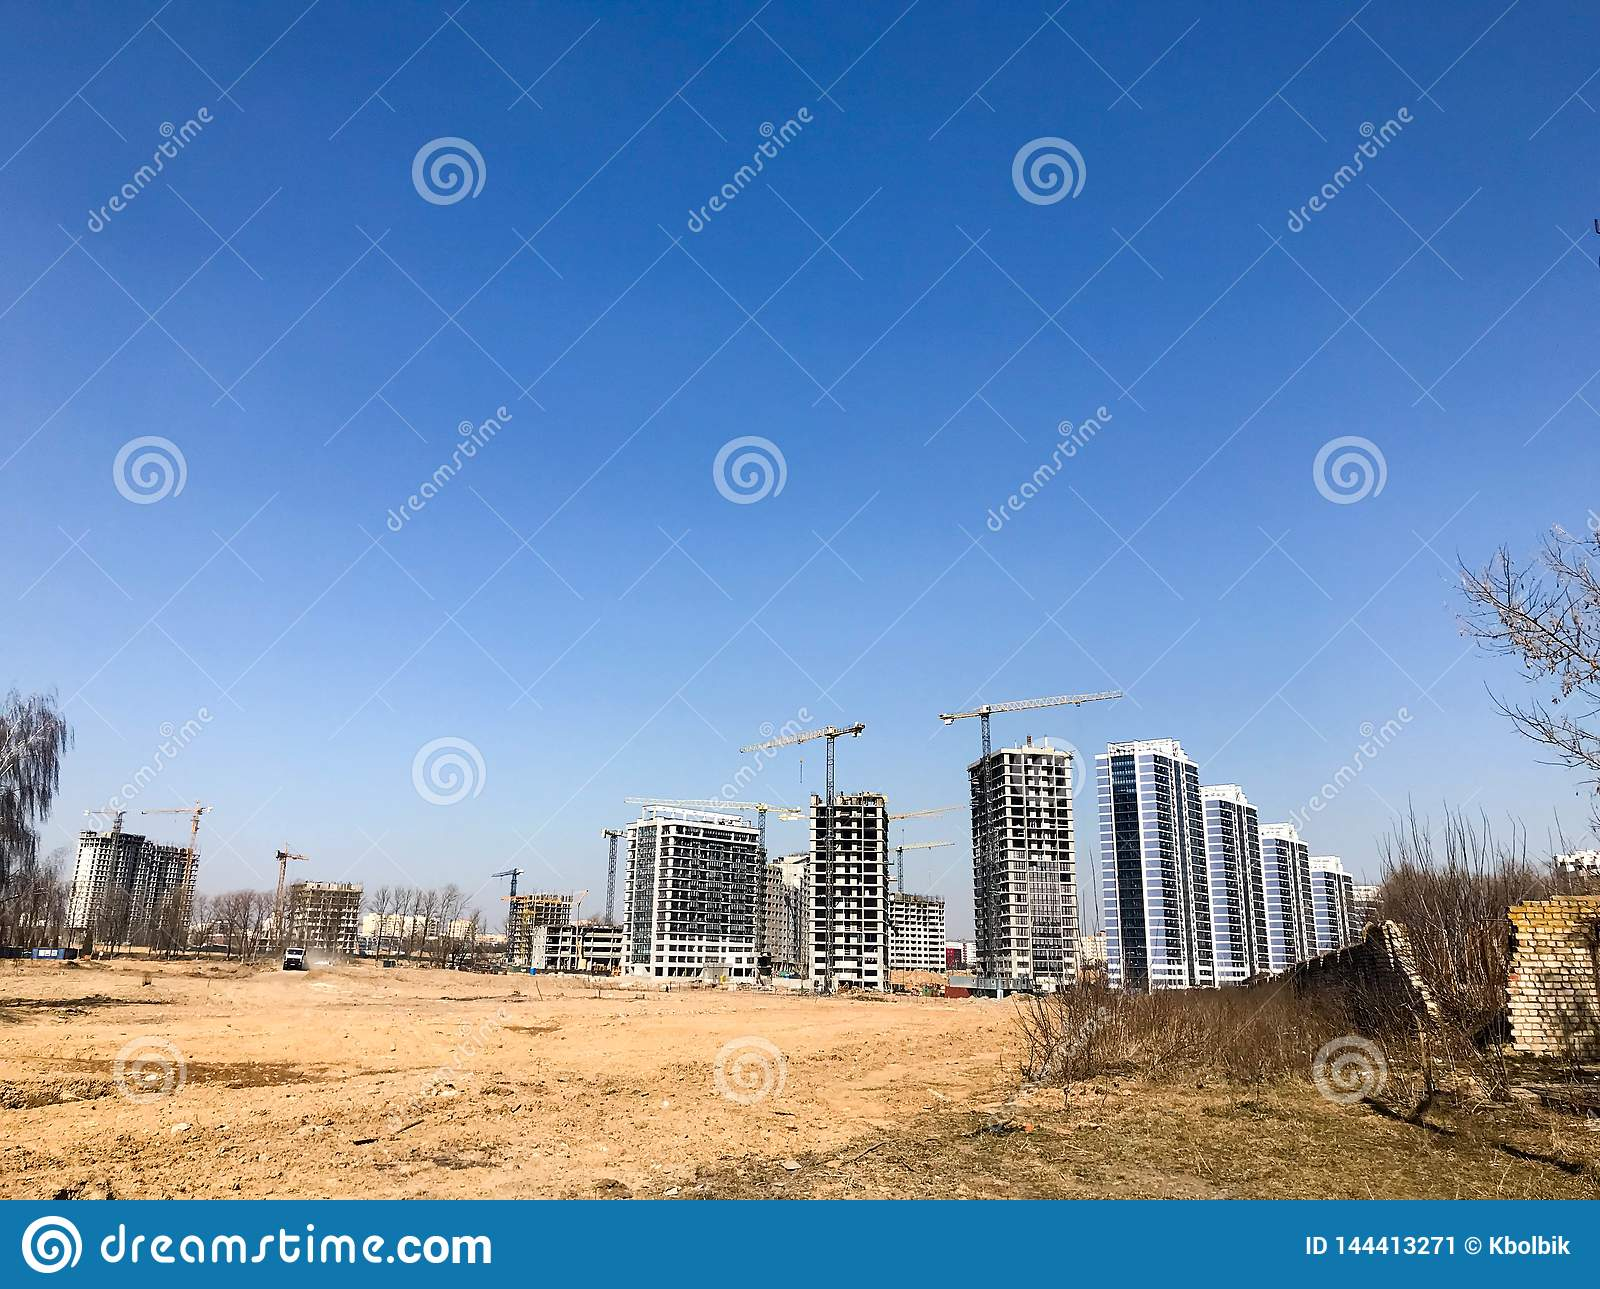 Building with the help of construction cranes of high reinforced concrete, panel, cast-frame, frame-block houses, buildings